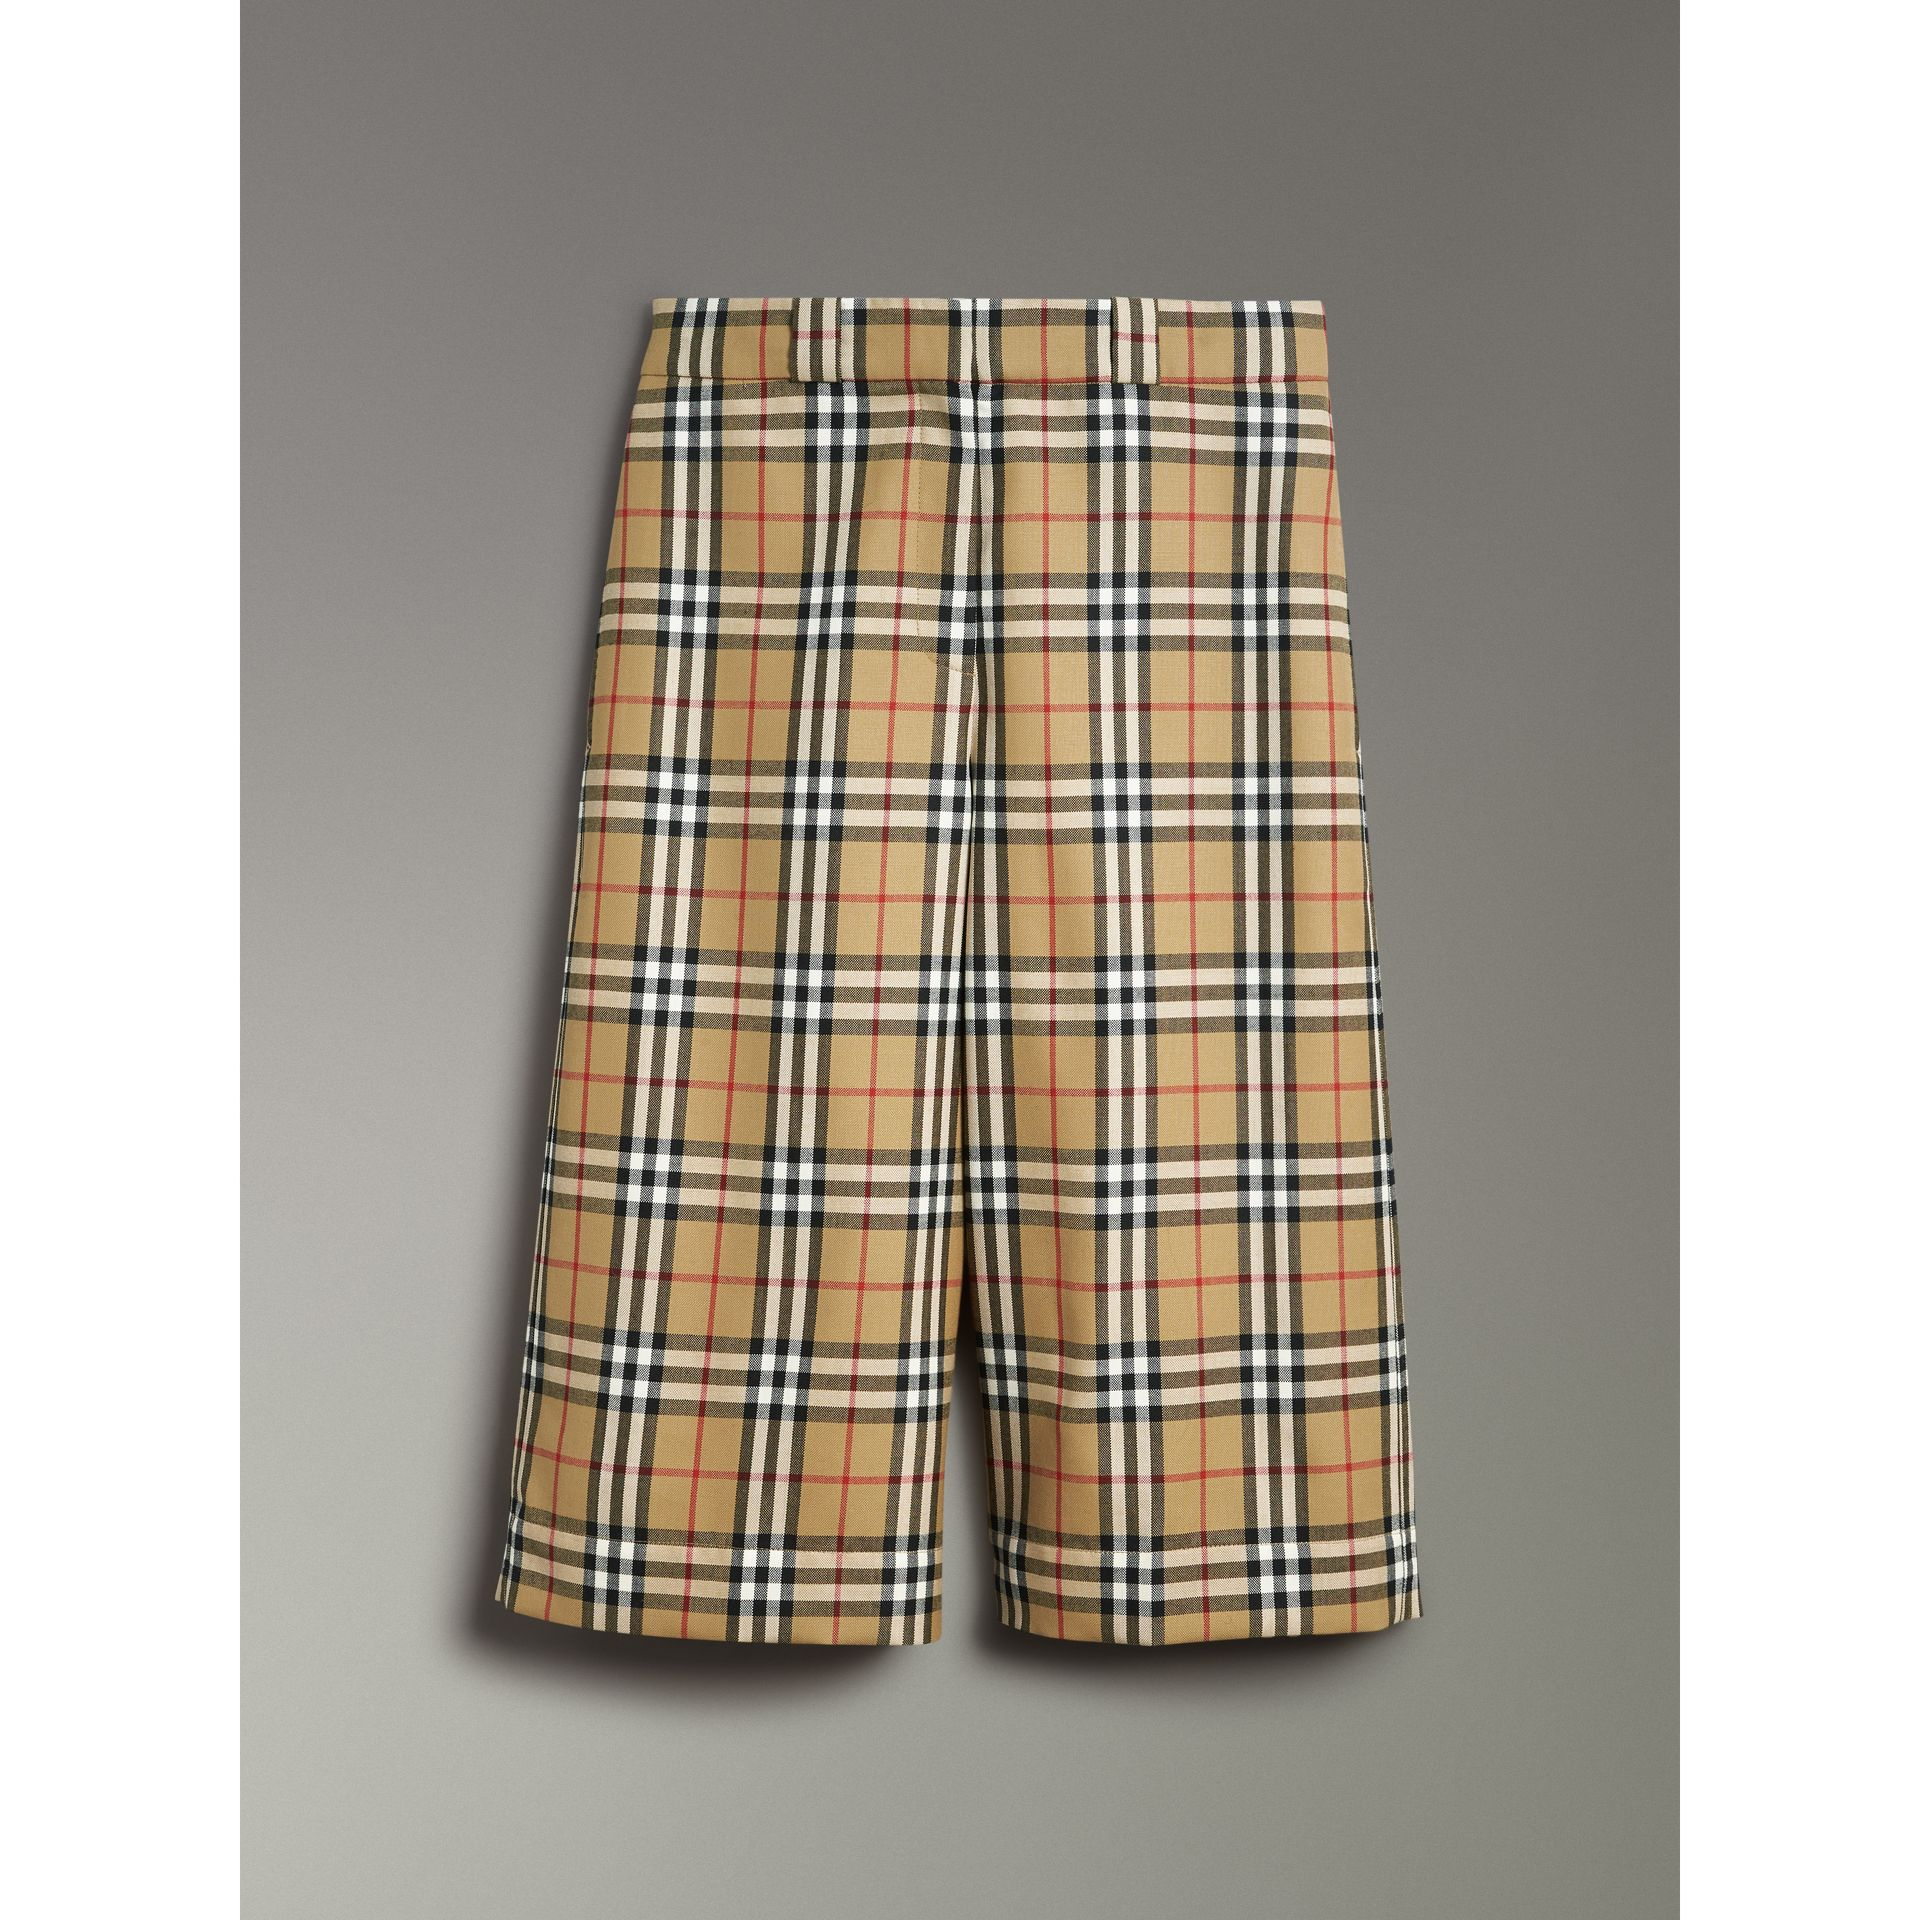 Vintage Check Wool Tailored Shorts in Antique Yellow - Women | Burberry Singapore - gallery image 3